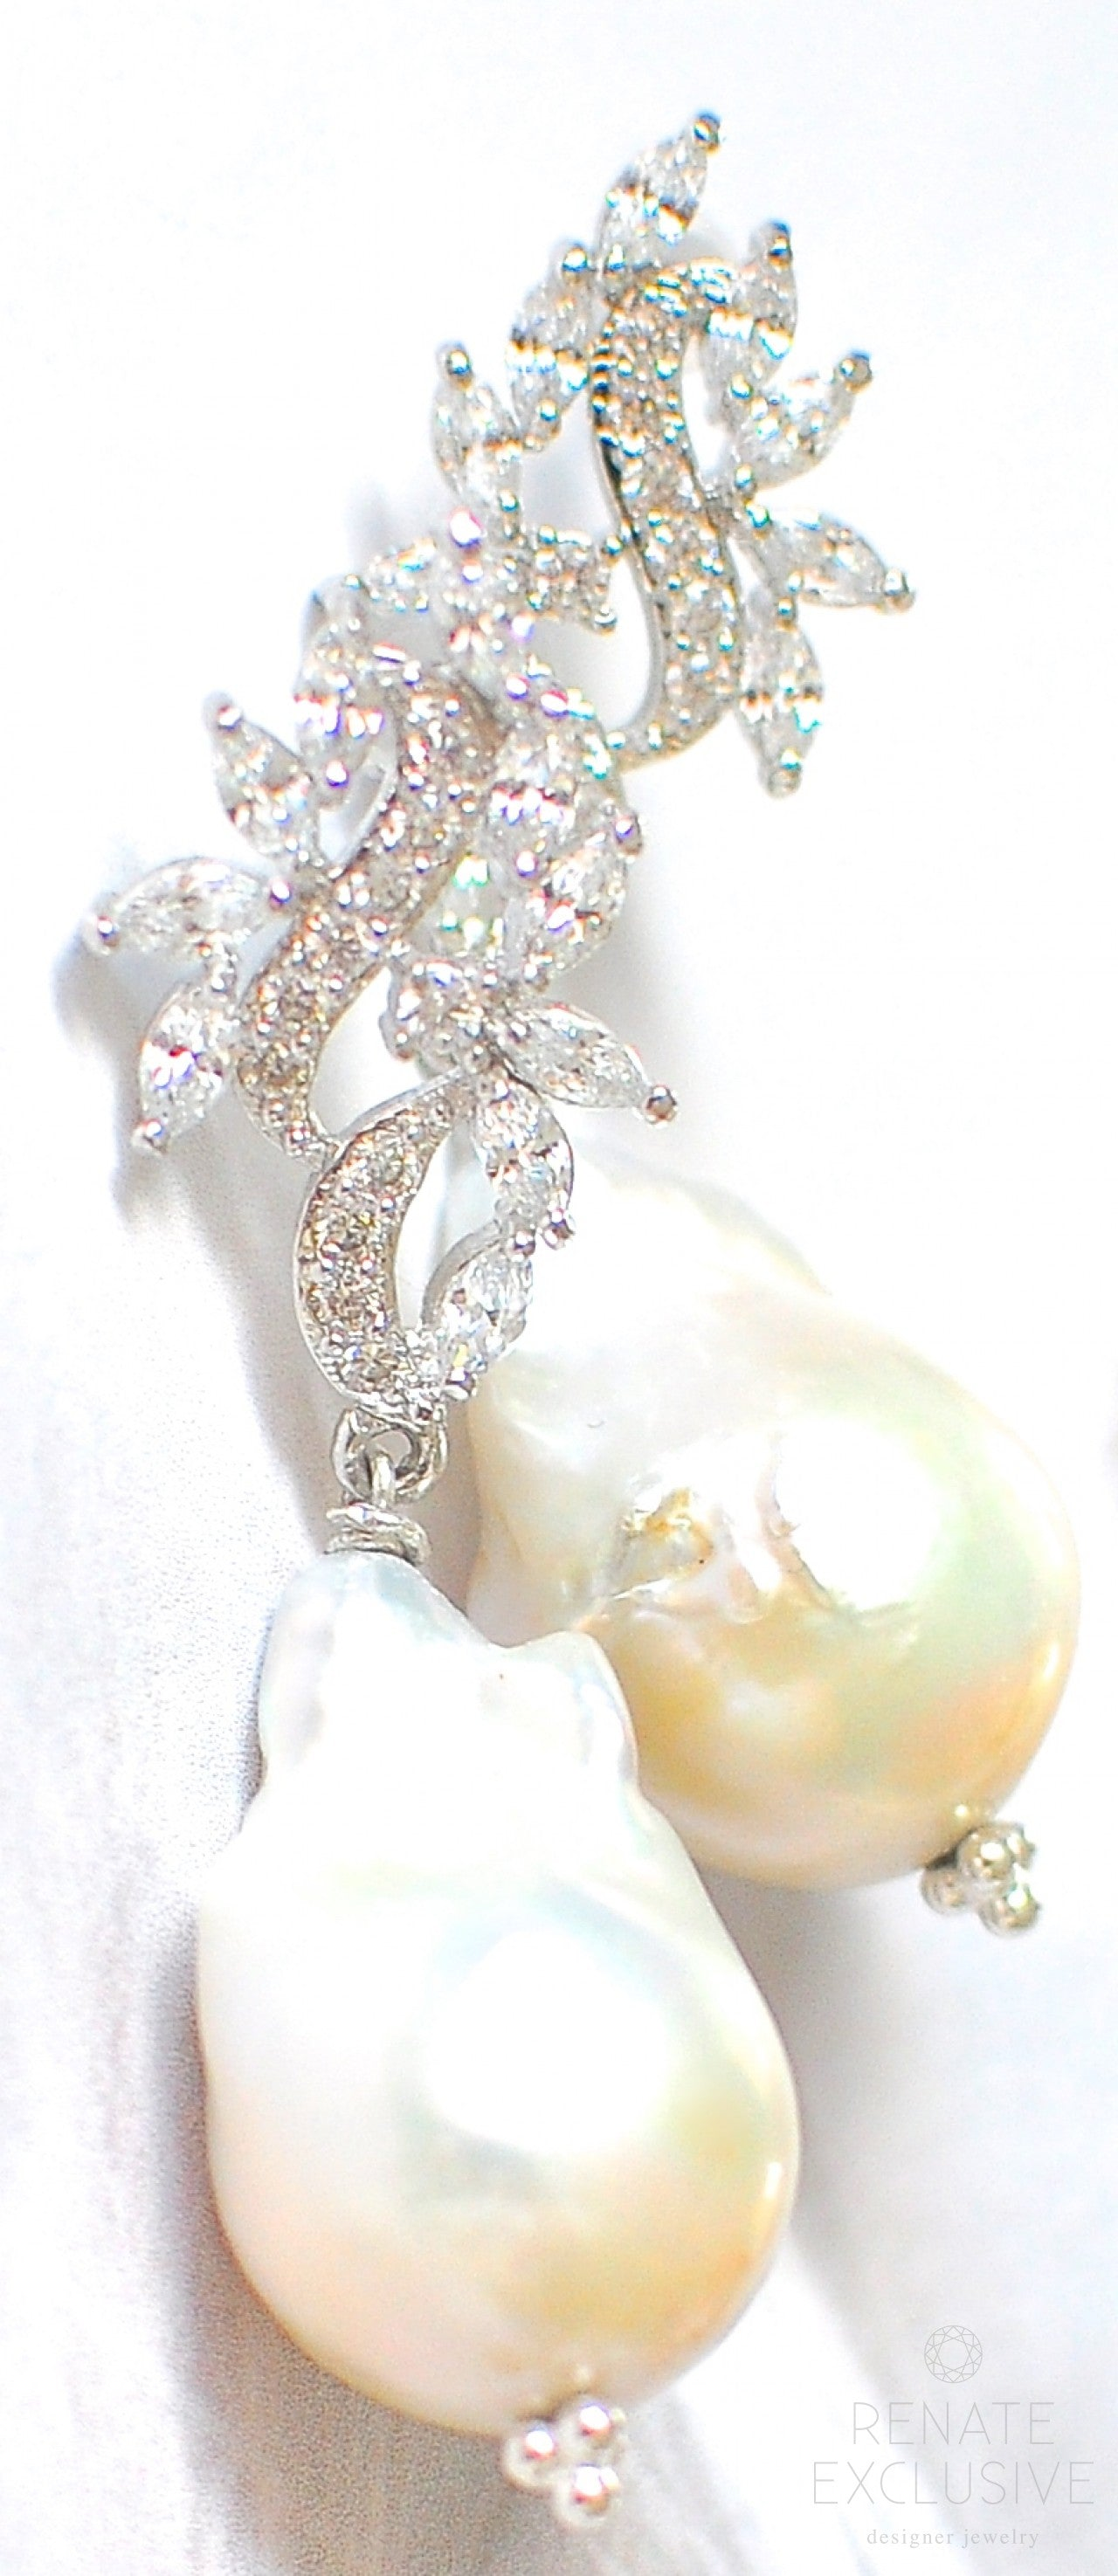 shell j bryant jewelry karat org at on earrings and john giant clam clip sale id by for landrum pearl white black